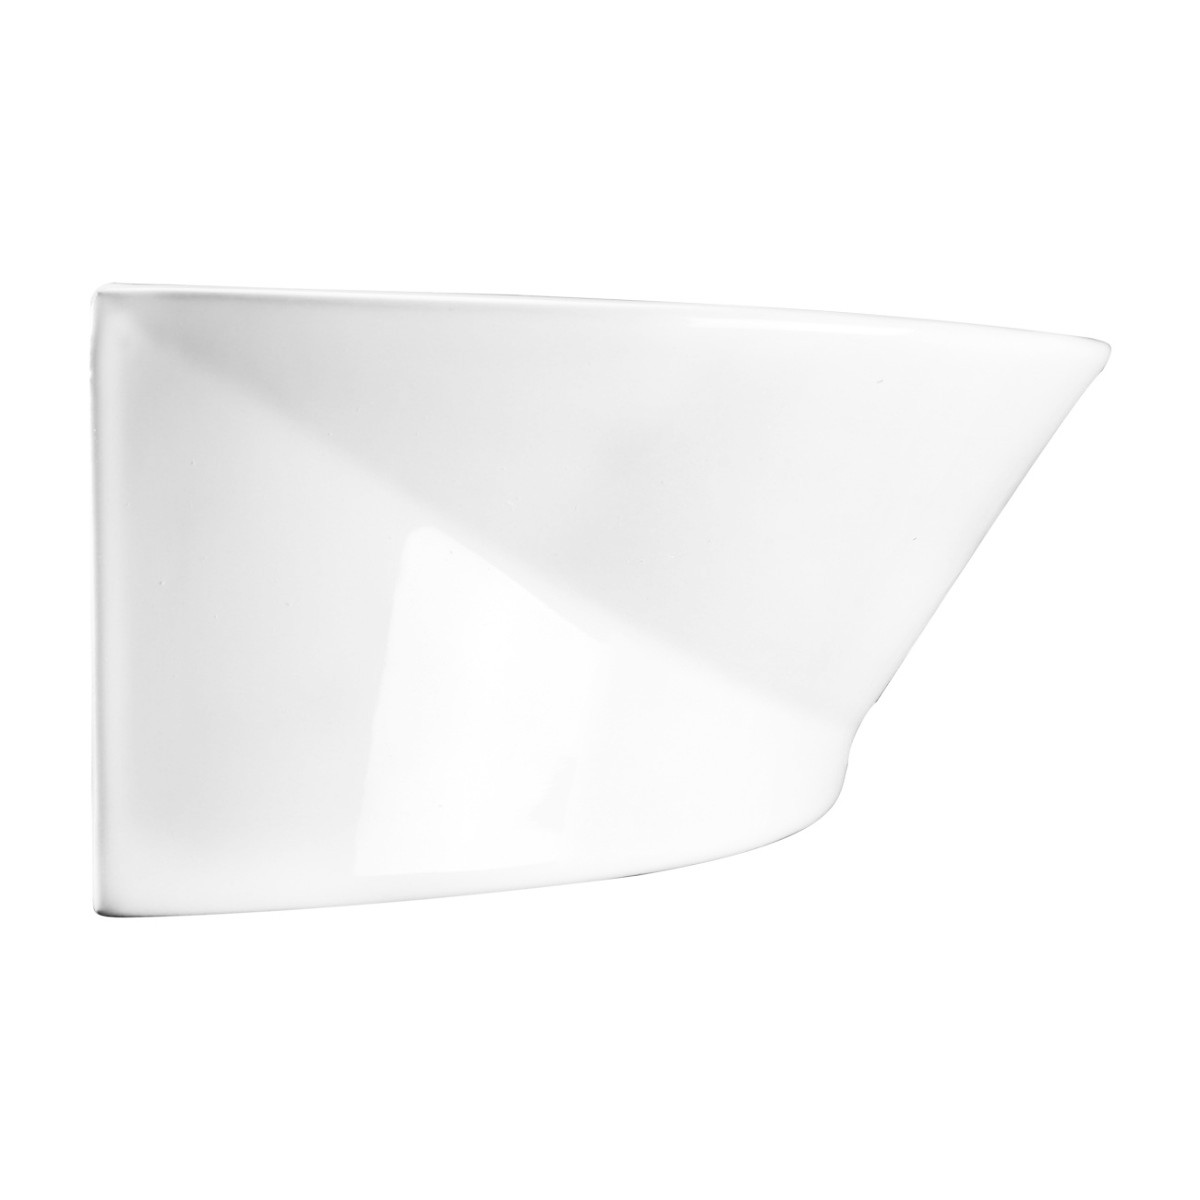 White Porcelain Wall Mount Sink with Single Faucet Hole Set Of 4 bathroom vessel sinks Countertop vessel sink corner wall mount bathroom sink